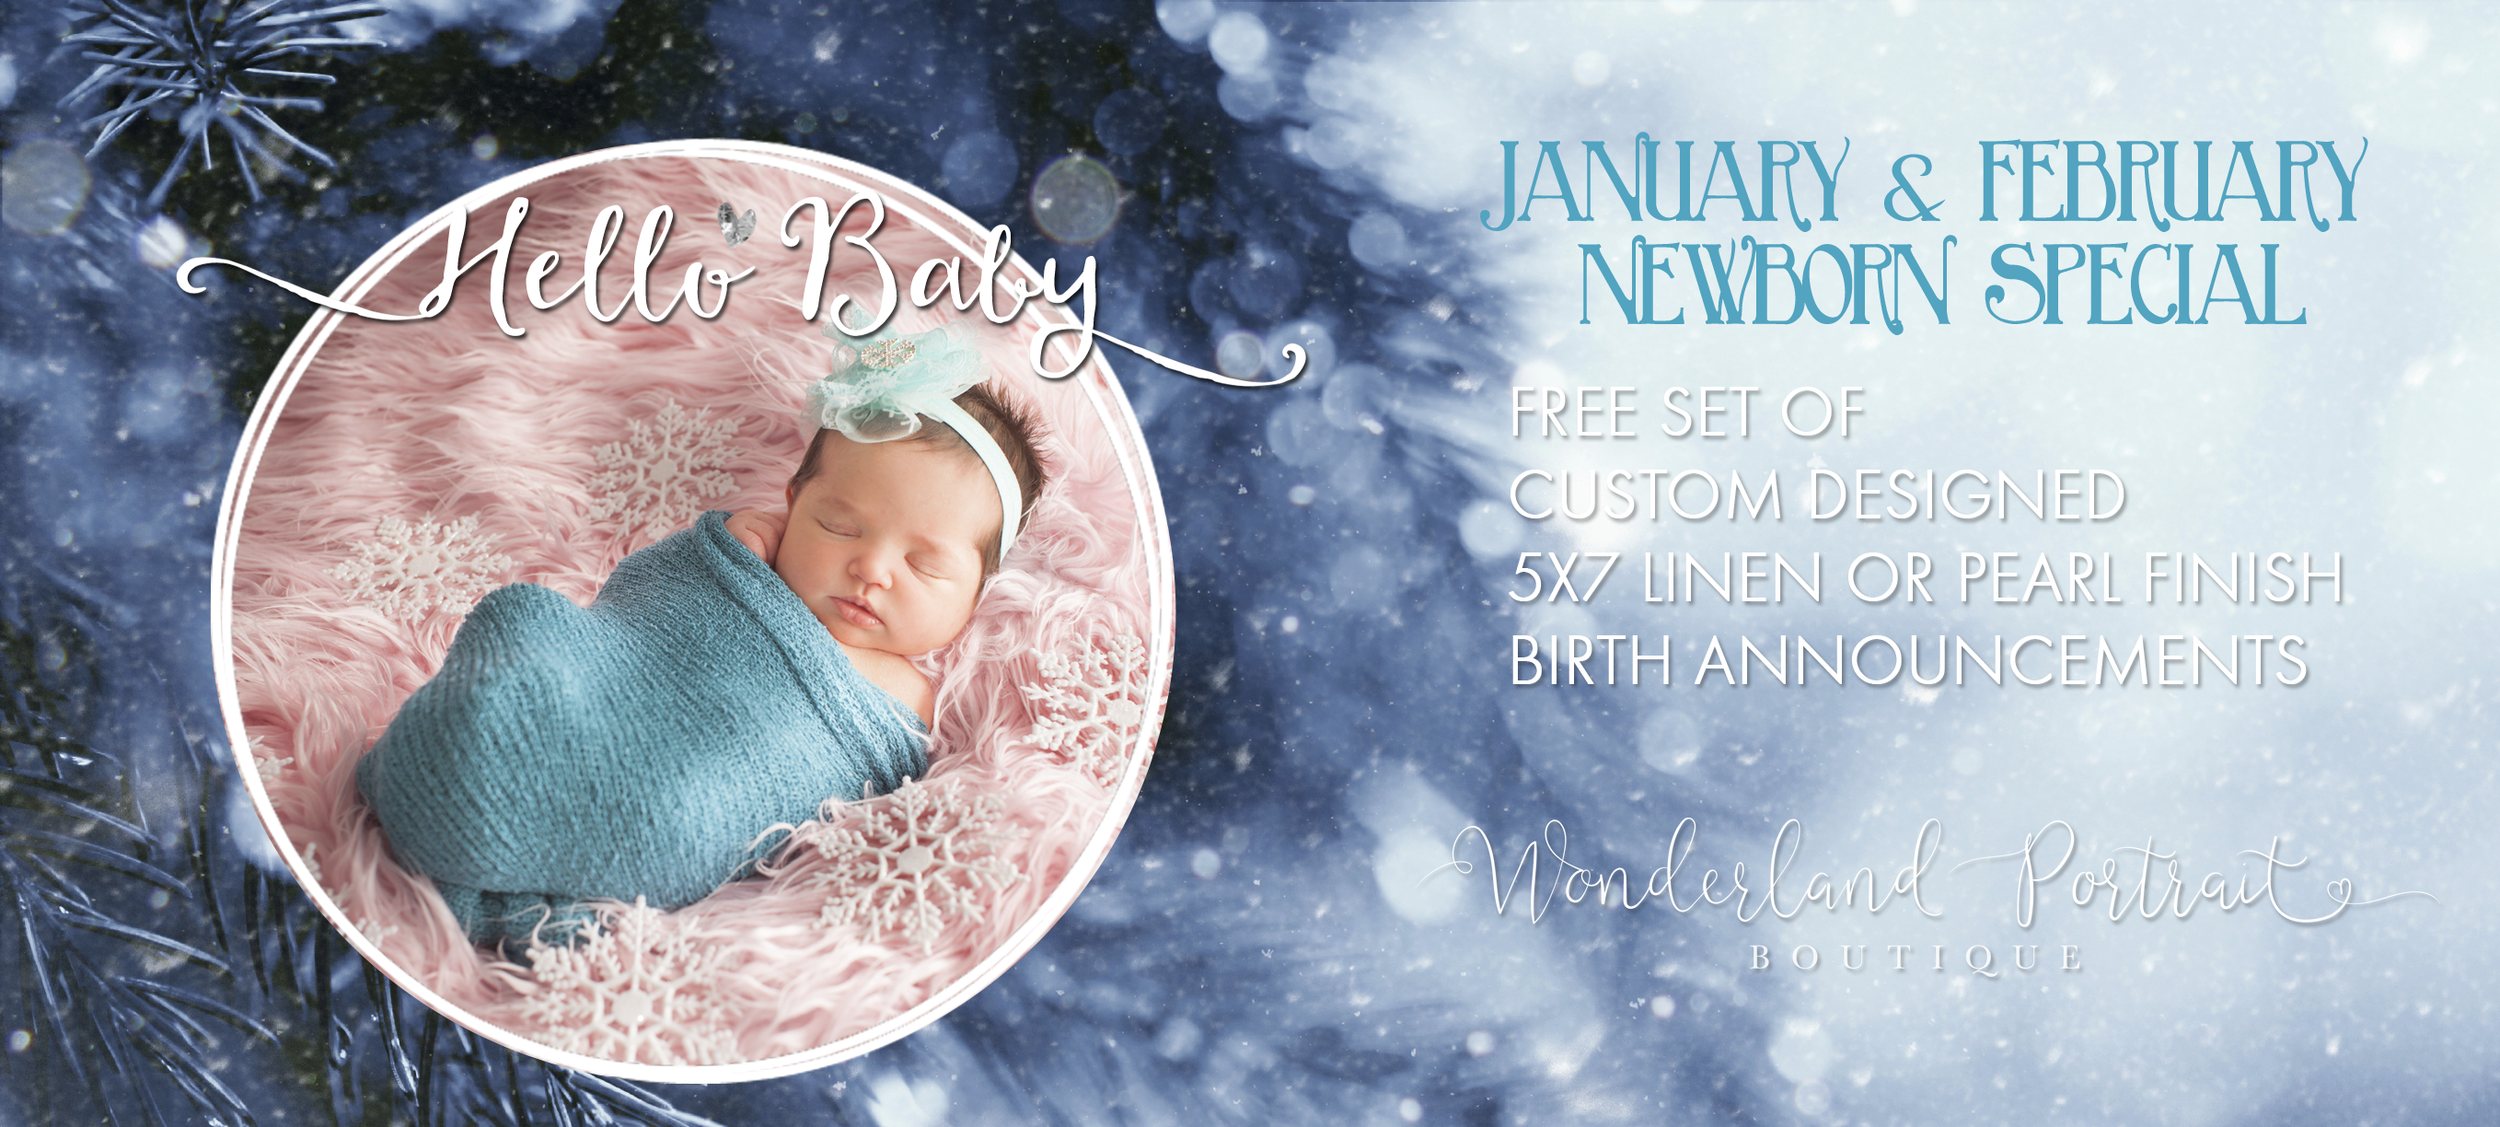 Bucks County PA Baby Pictures Winter Newborn January February 2016